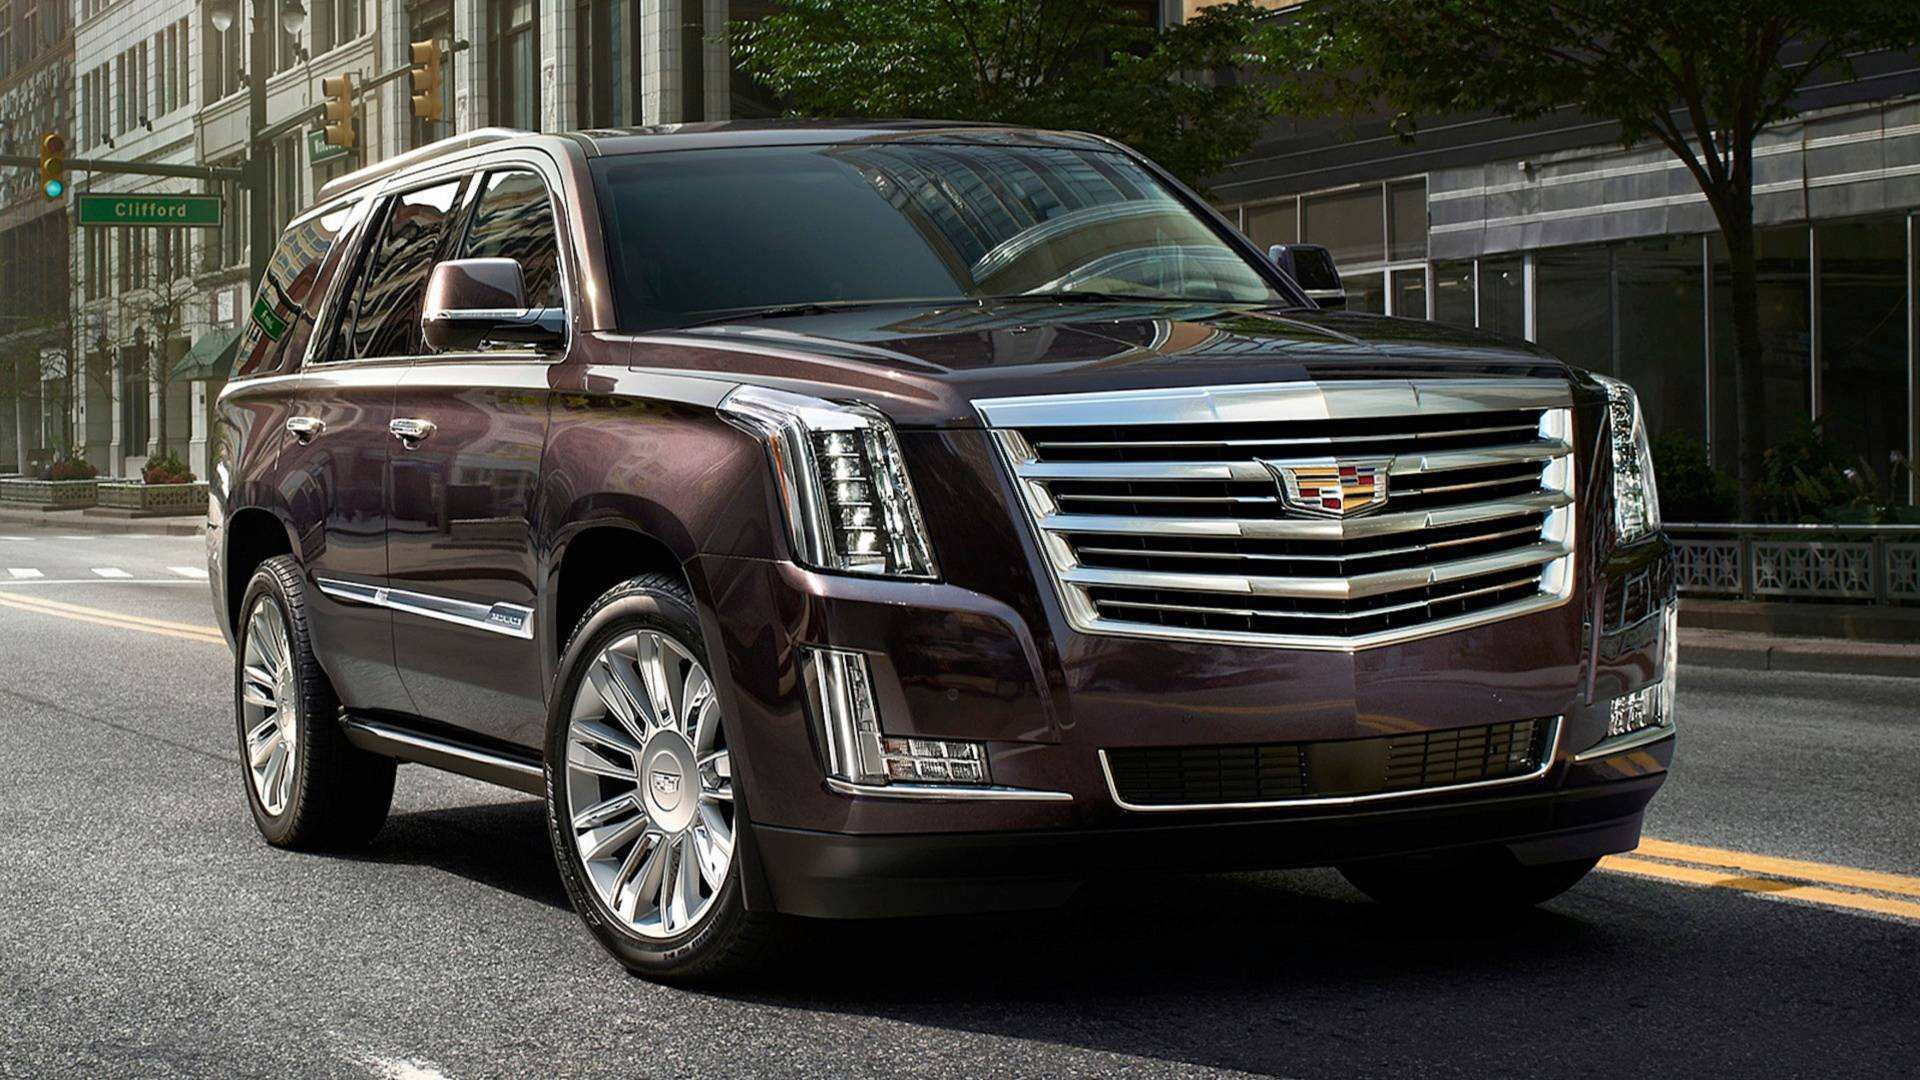 99 A Cadillac Escalade New Body Style 2020 Ratings